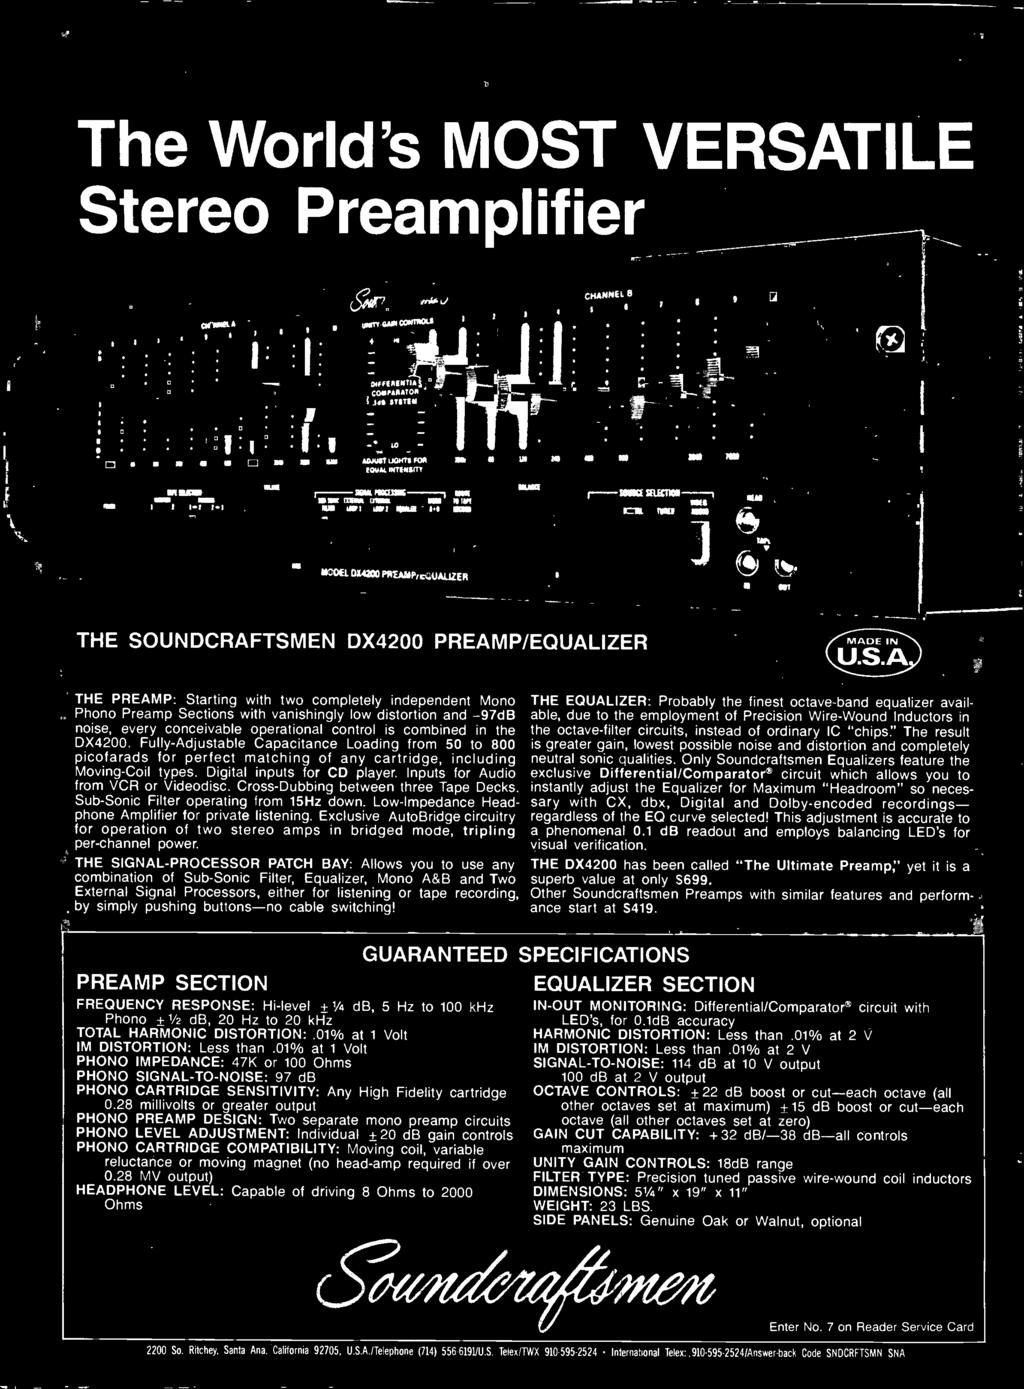 October 1983 Pdf Subwoofer Vx 12 Bd Fully Djustable Capacitance Loading From 50 To 800 Picofarads For Perfect Matching Of Any Cartridge